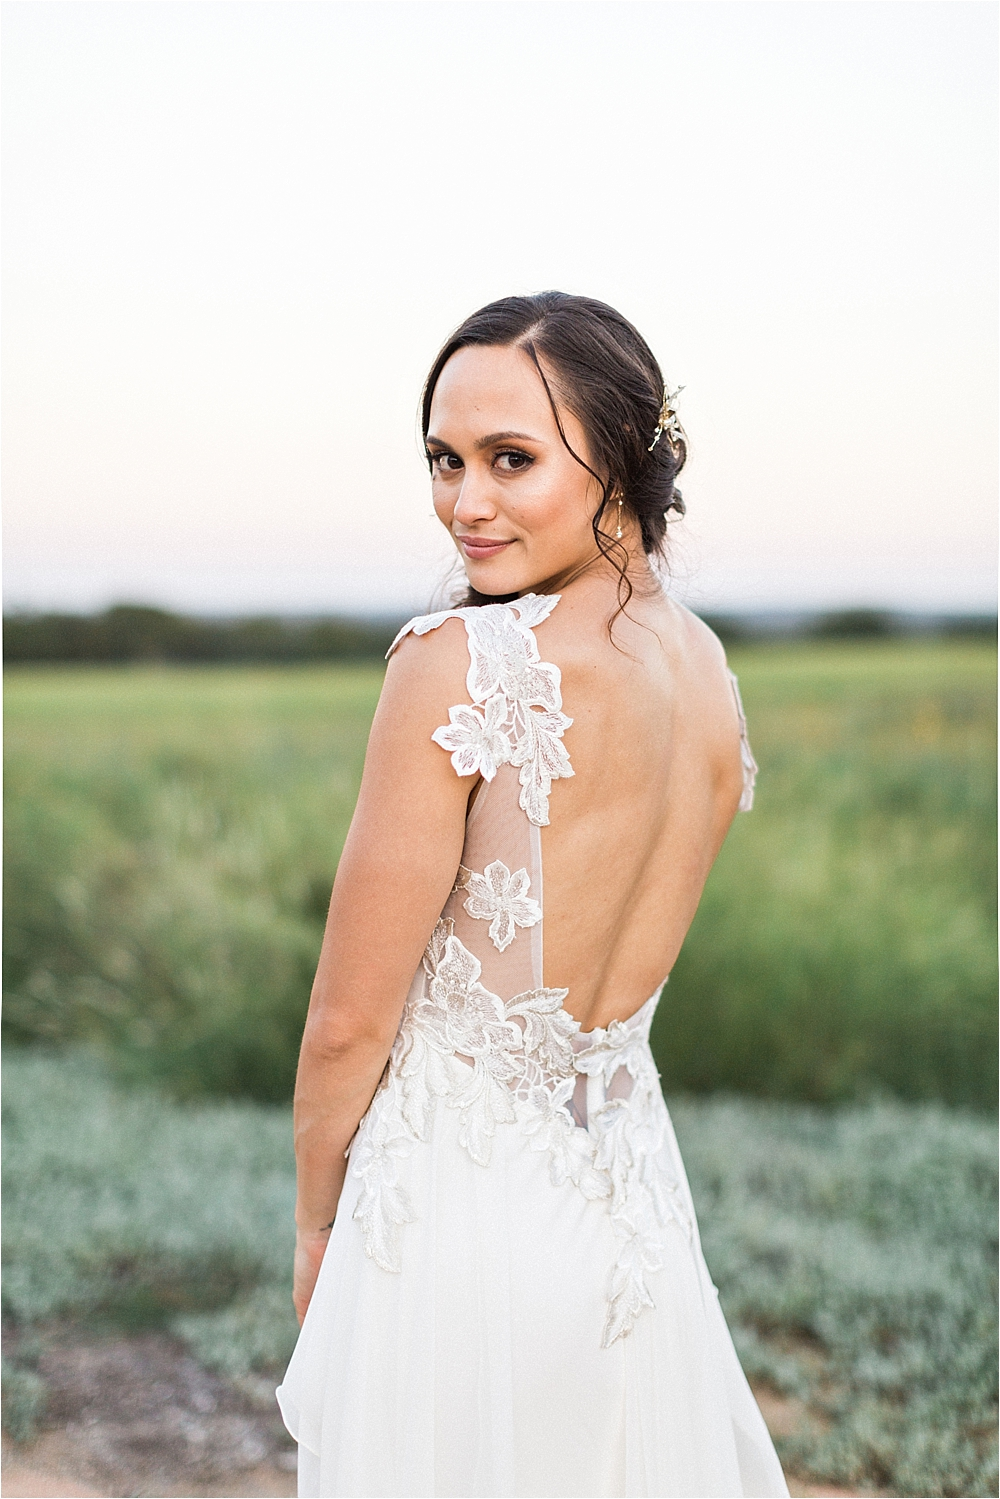 lace wedding dresses - photo by Flora and Fauna http://ruffledblog.com/modern-bohemian-wedding-with-an-air-plant-bouquet